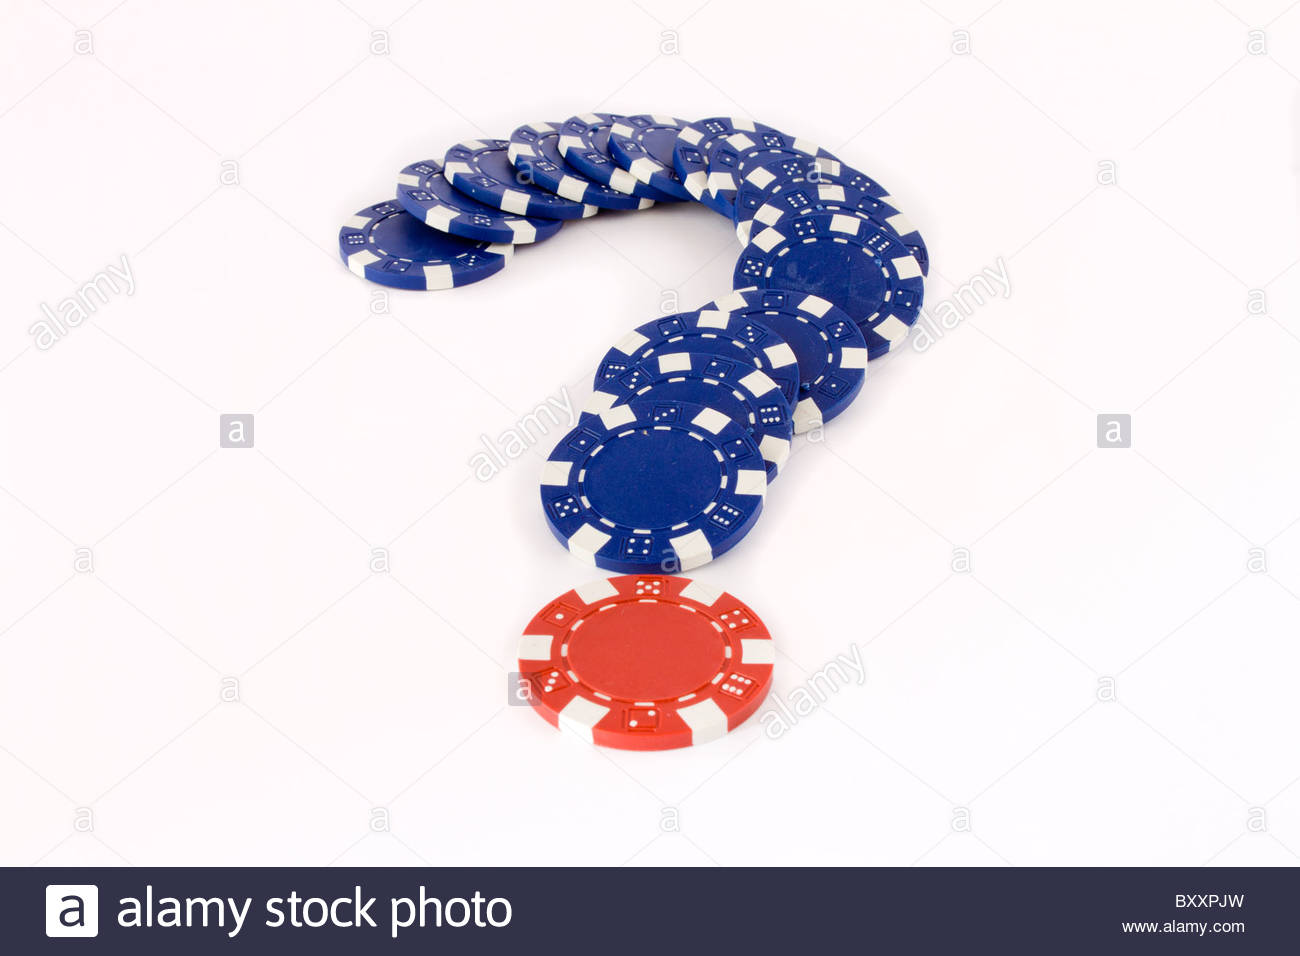 closeup of blue and red chips for simulate question - Stock Image